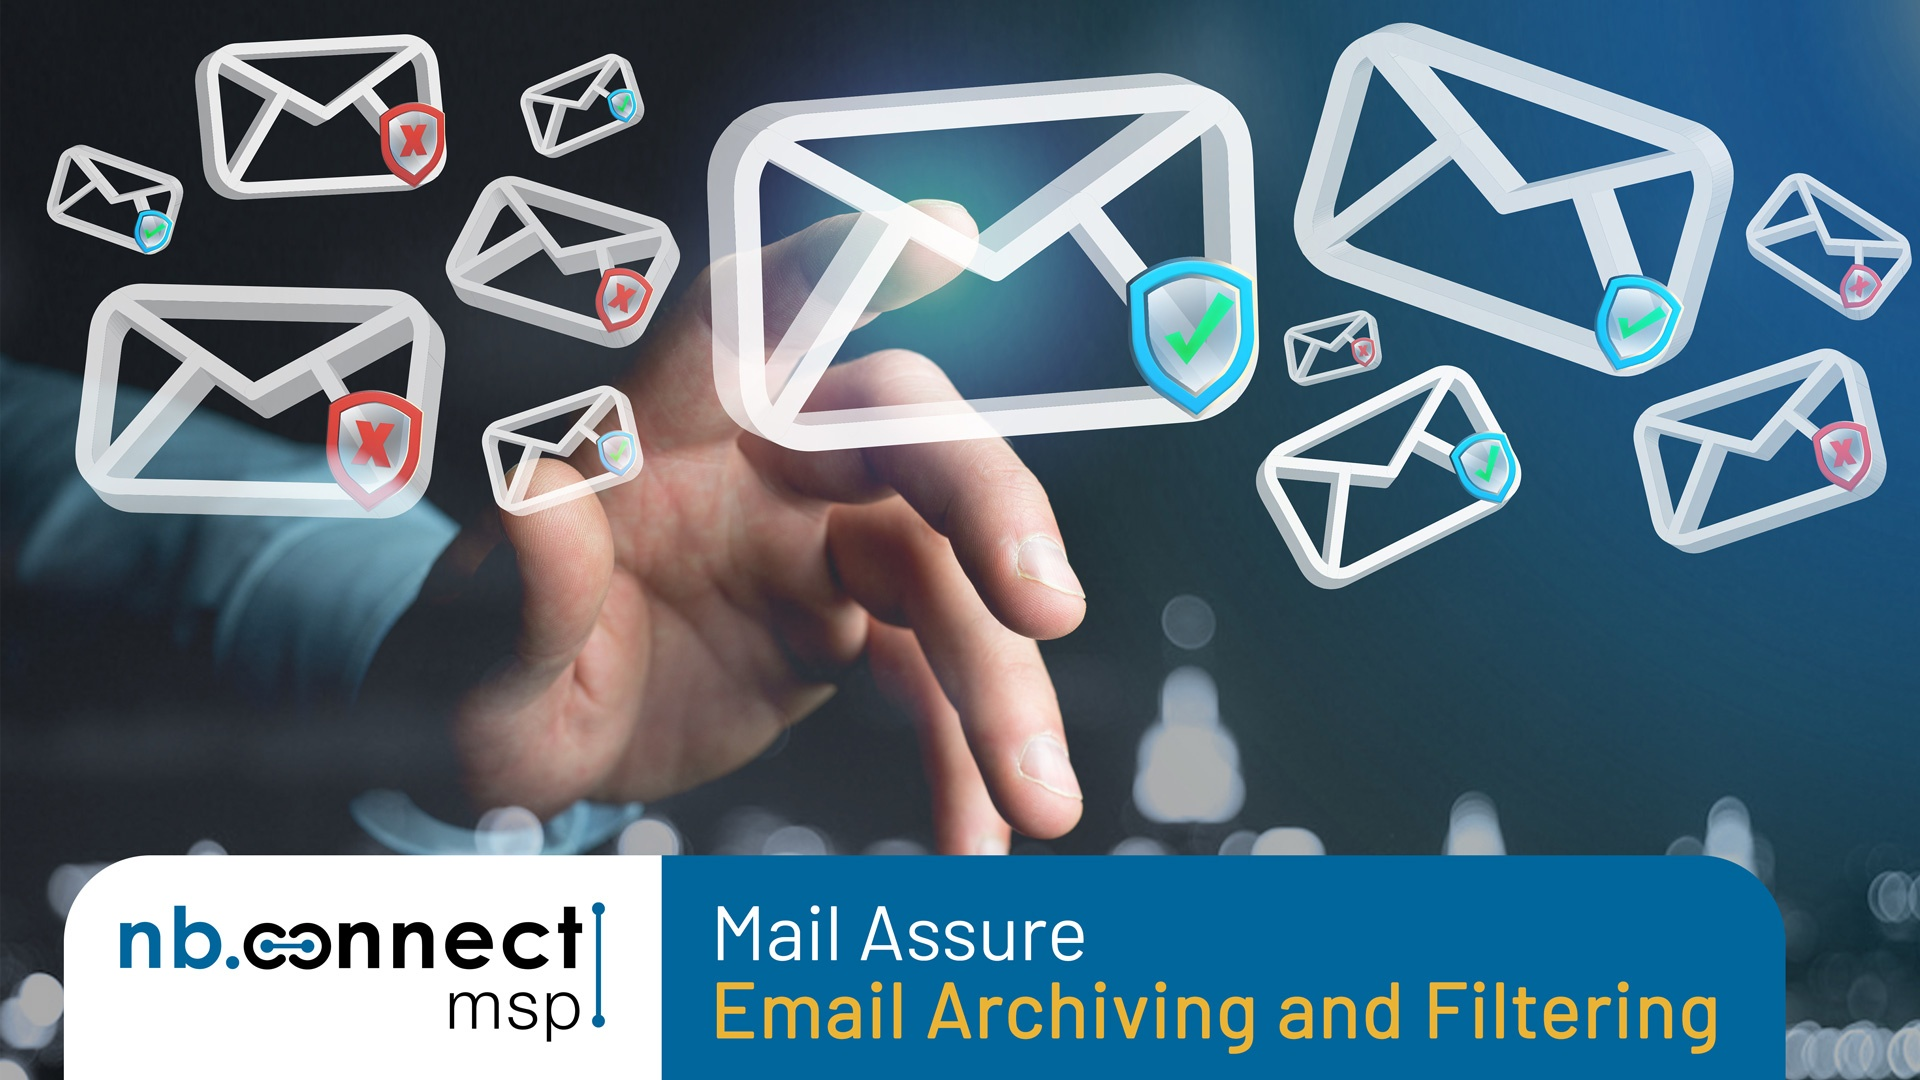 nbconnect mail assure